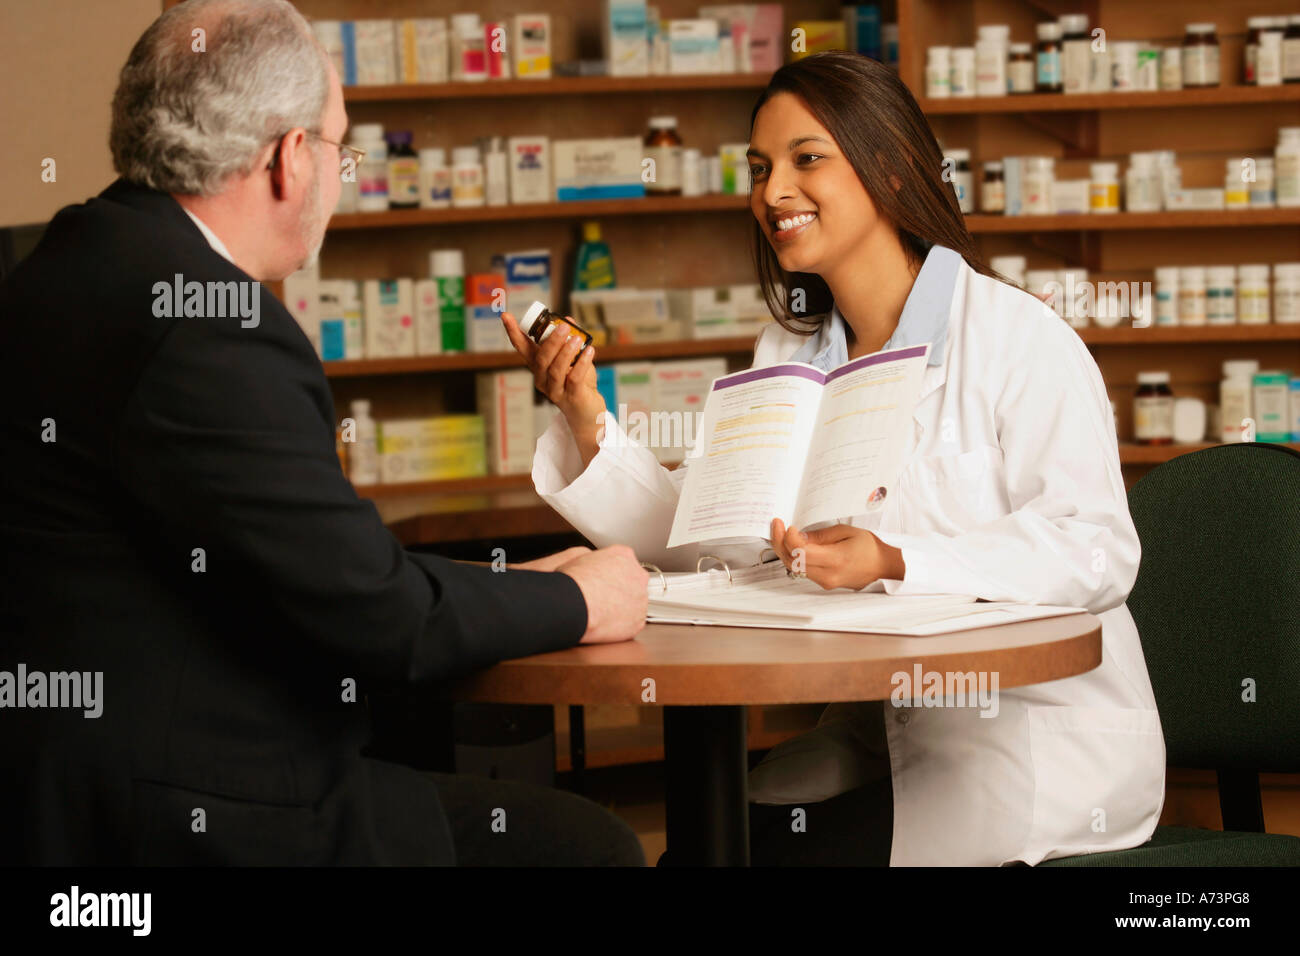 An older man seeking advice from a oung lady working at a pharmacy - Stock Image